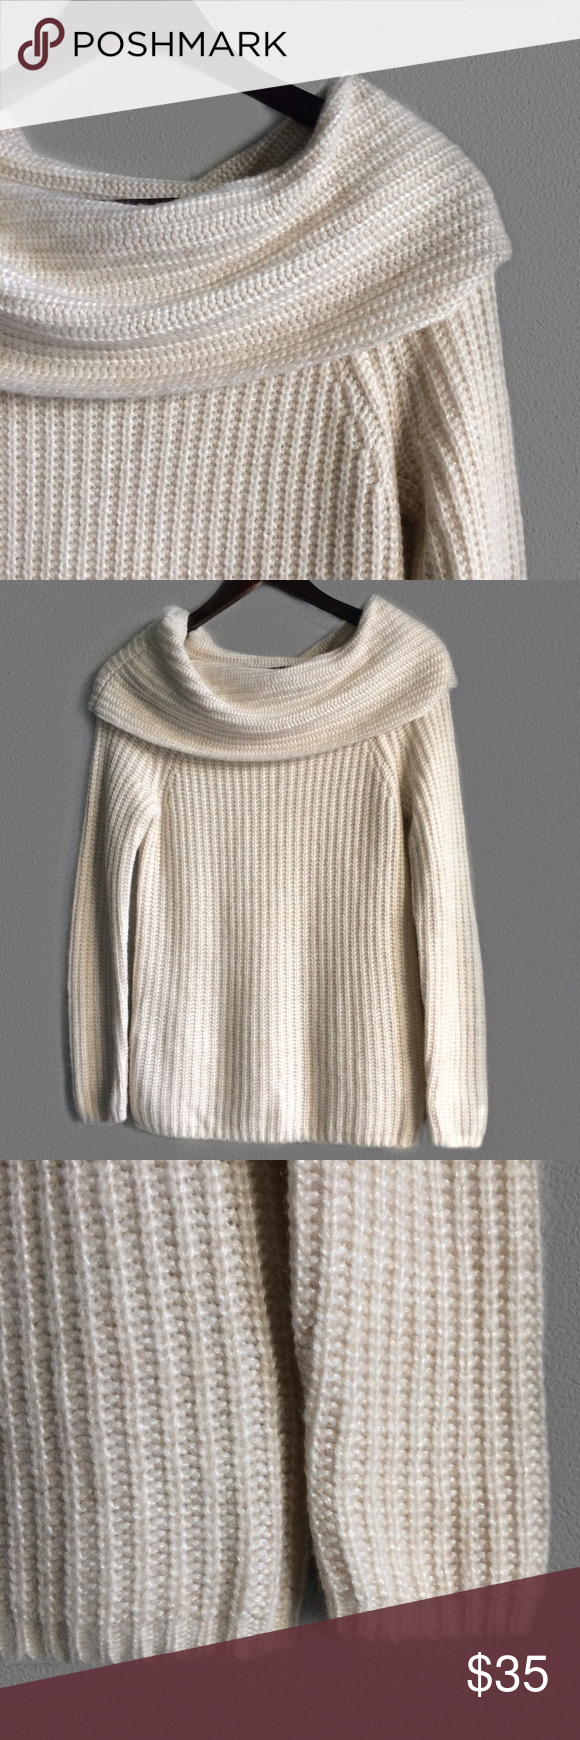 WHBM Cream Ribbed Cowl Neck Sweater | Cowl neck, White house black ...